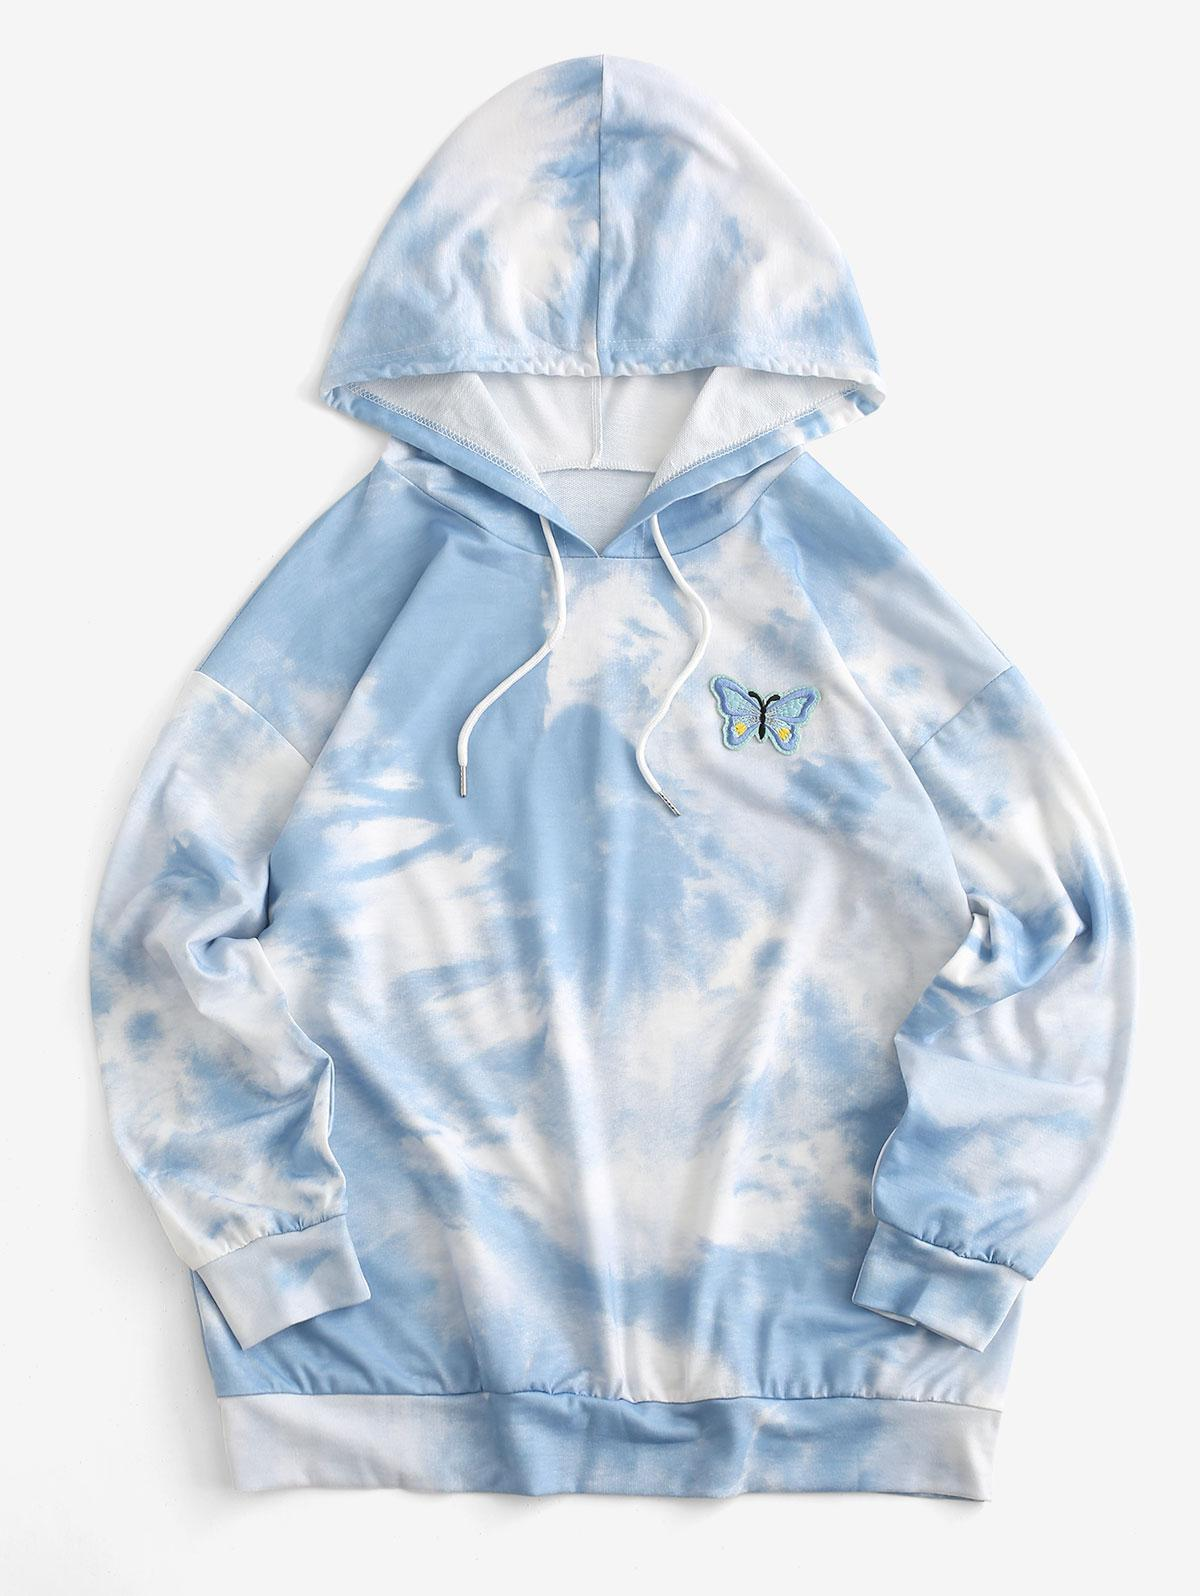 Cloud Tie Dye Butterfly Embroidered Drawstring Drop Shoulder Hoodie